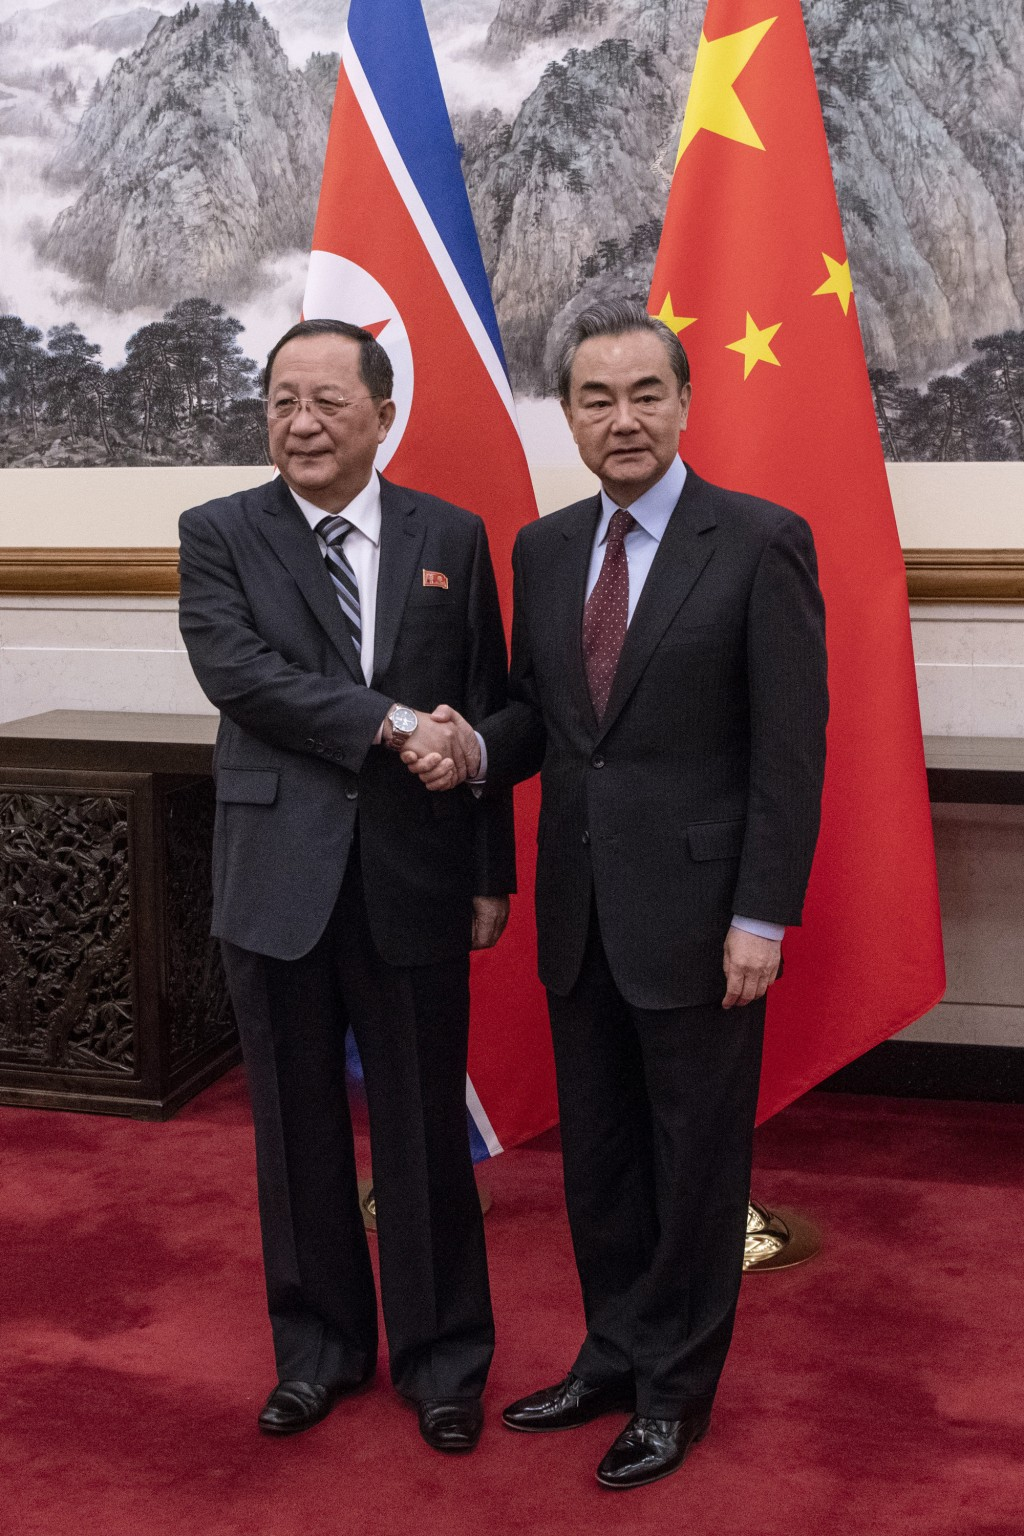 North Korean Foreign Minister Ri Yong Ho, left, meets China's Foreign Minister Wang Yi at the Diaoyutai State Guesthouse in Beijing  Friday, Dec. 7, 2